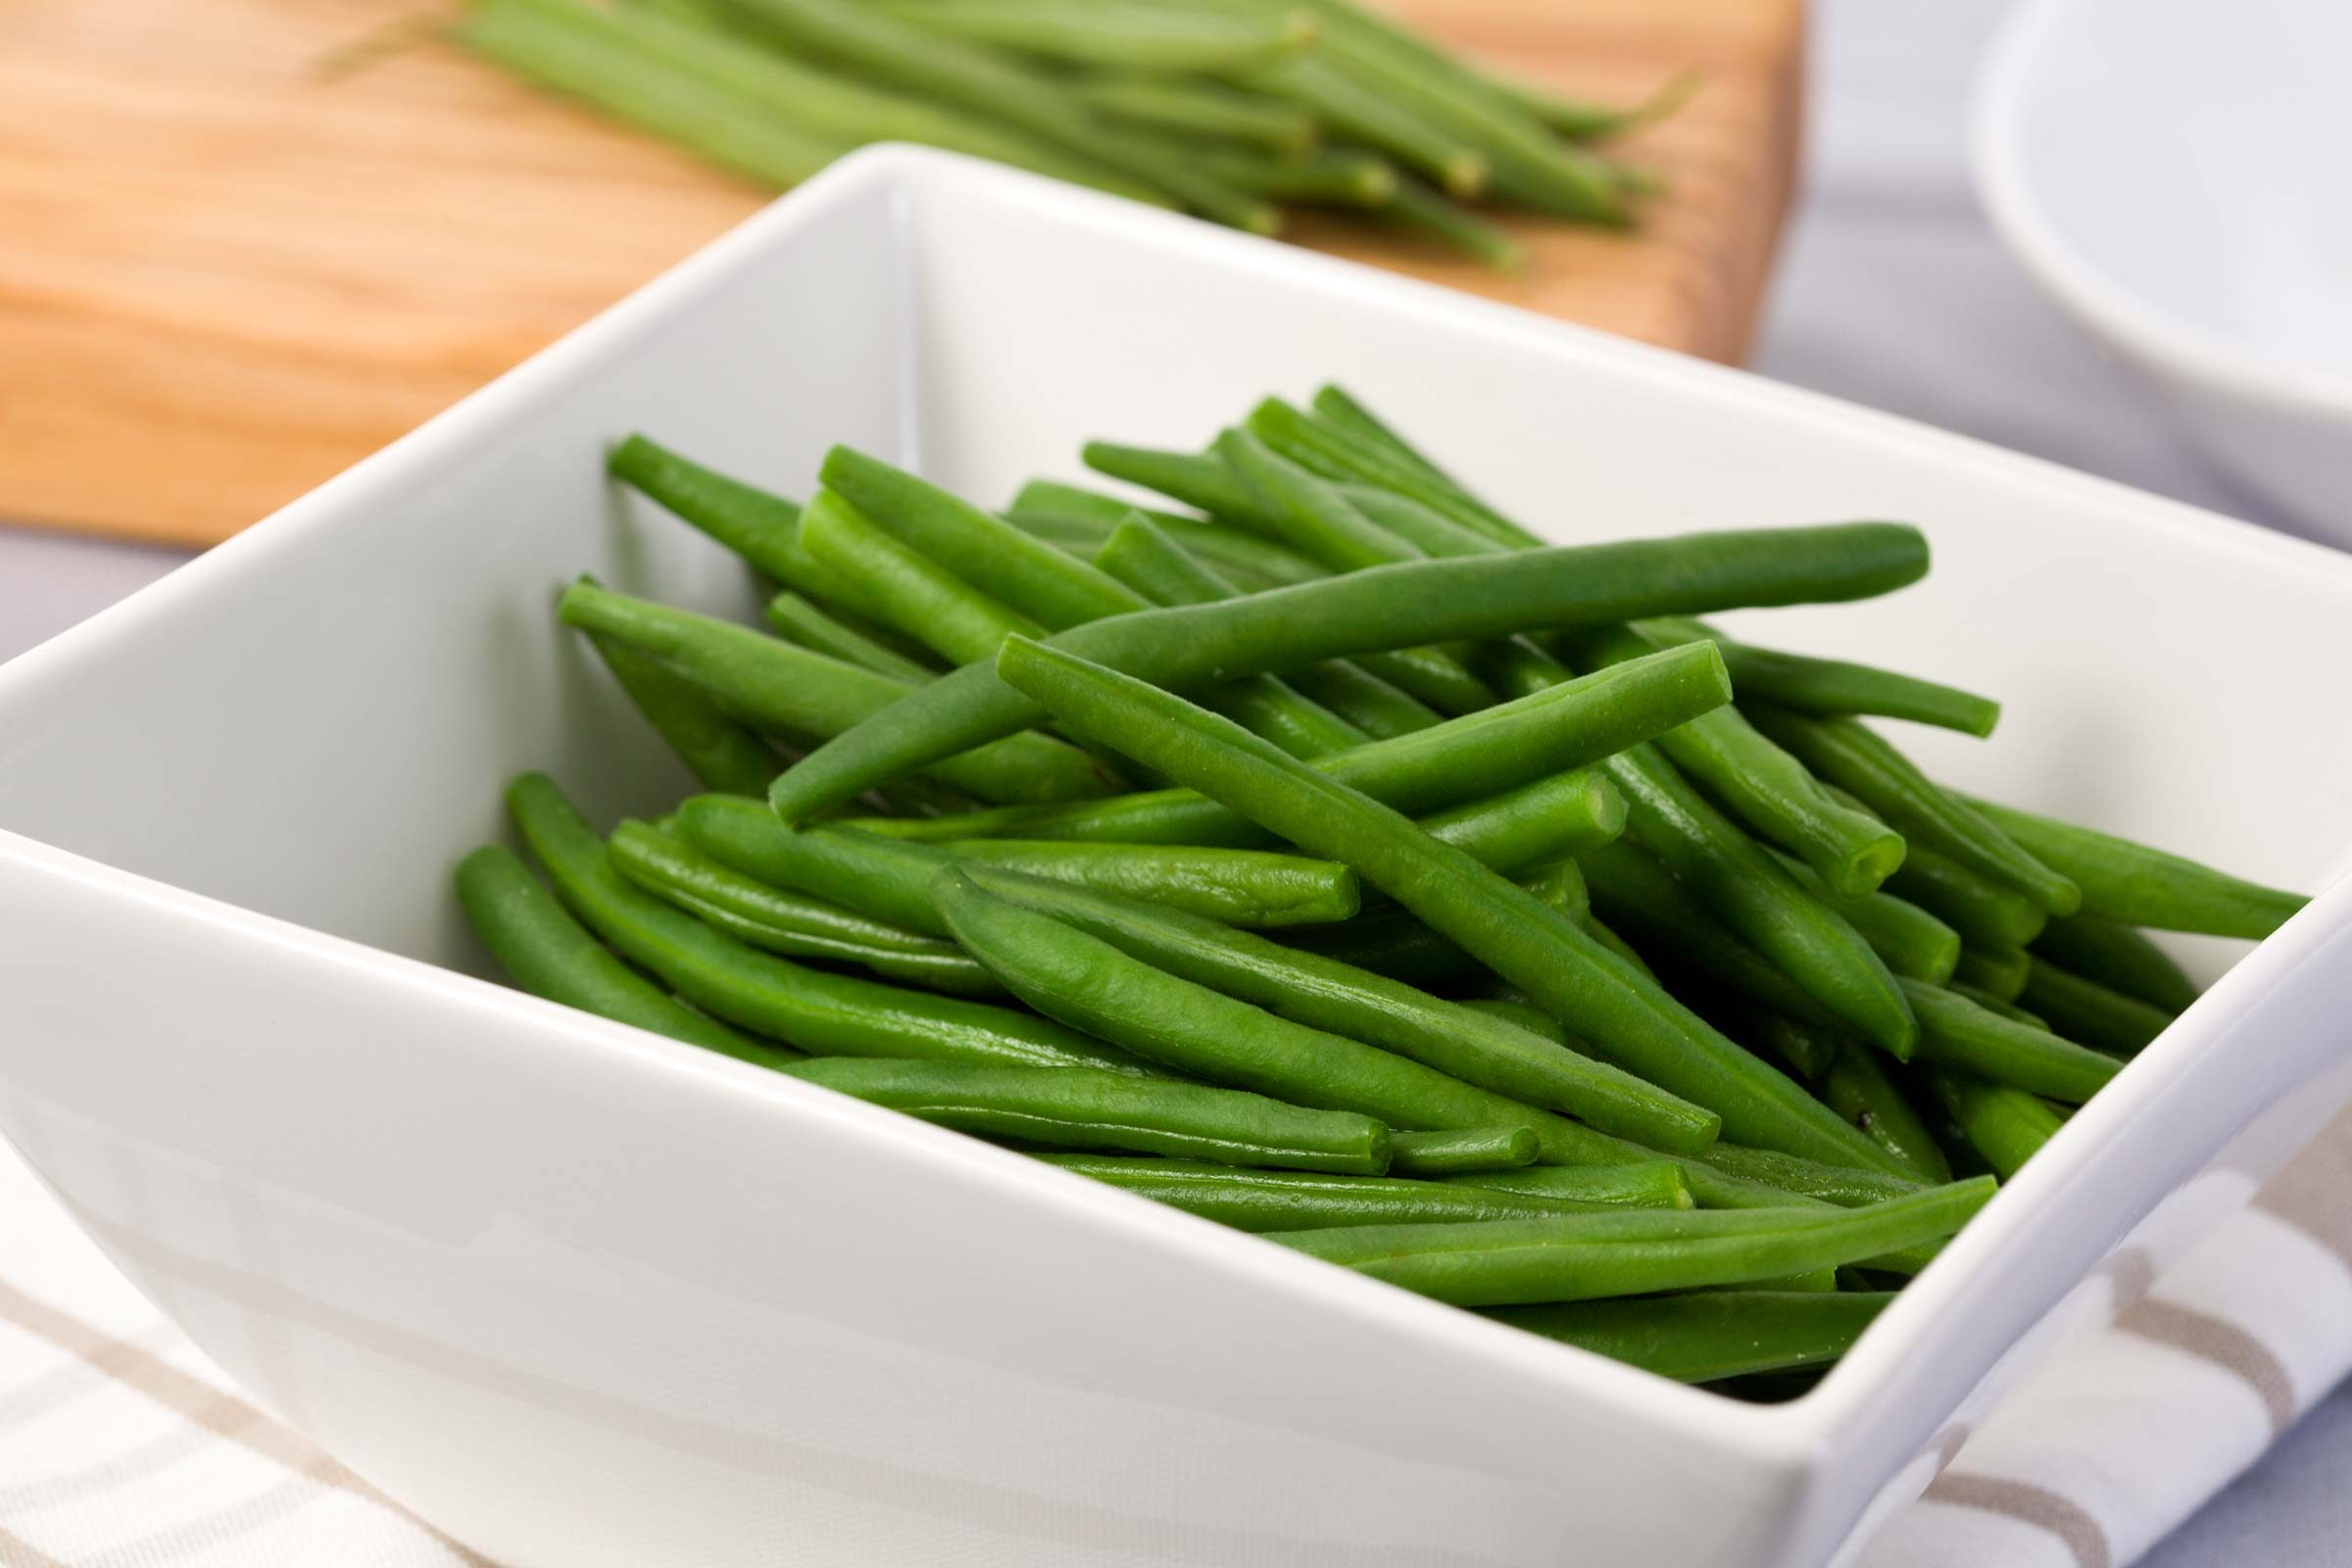 If you love green beans